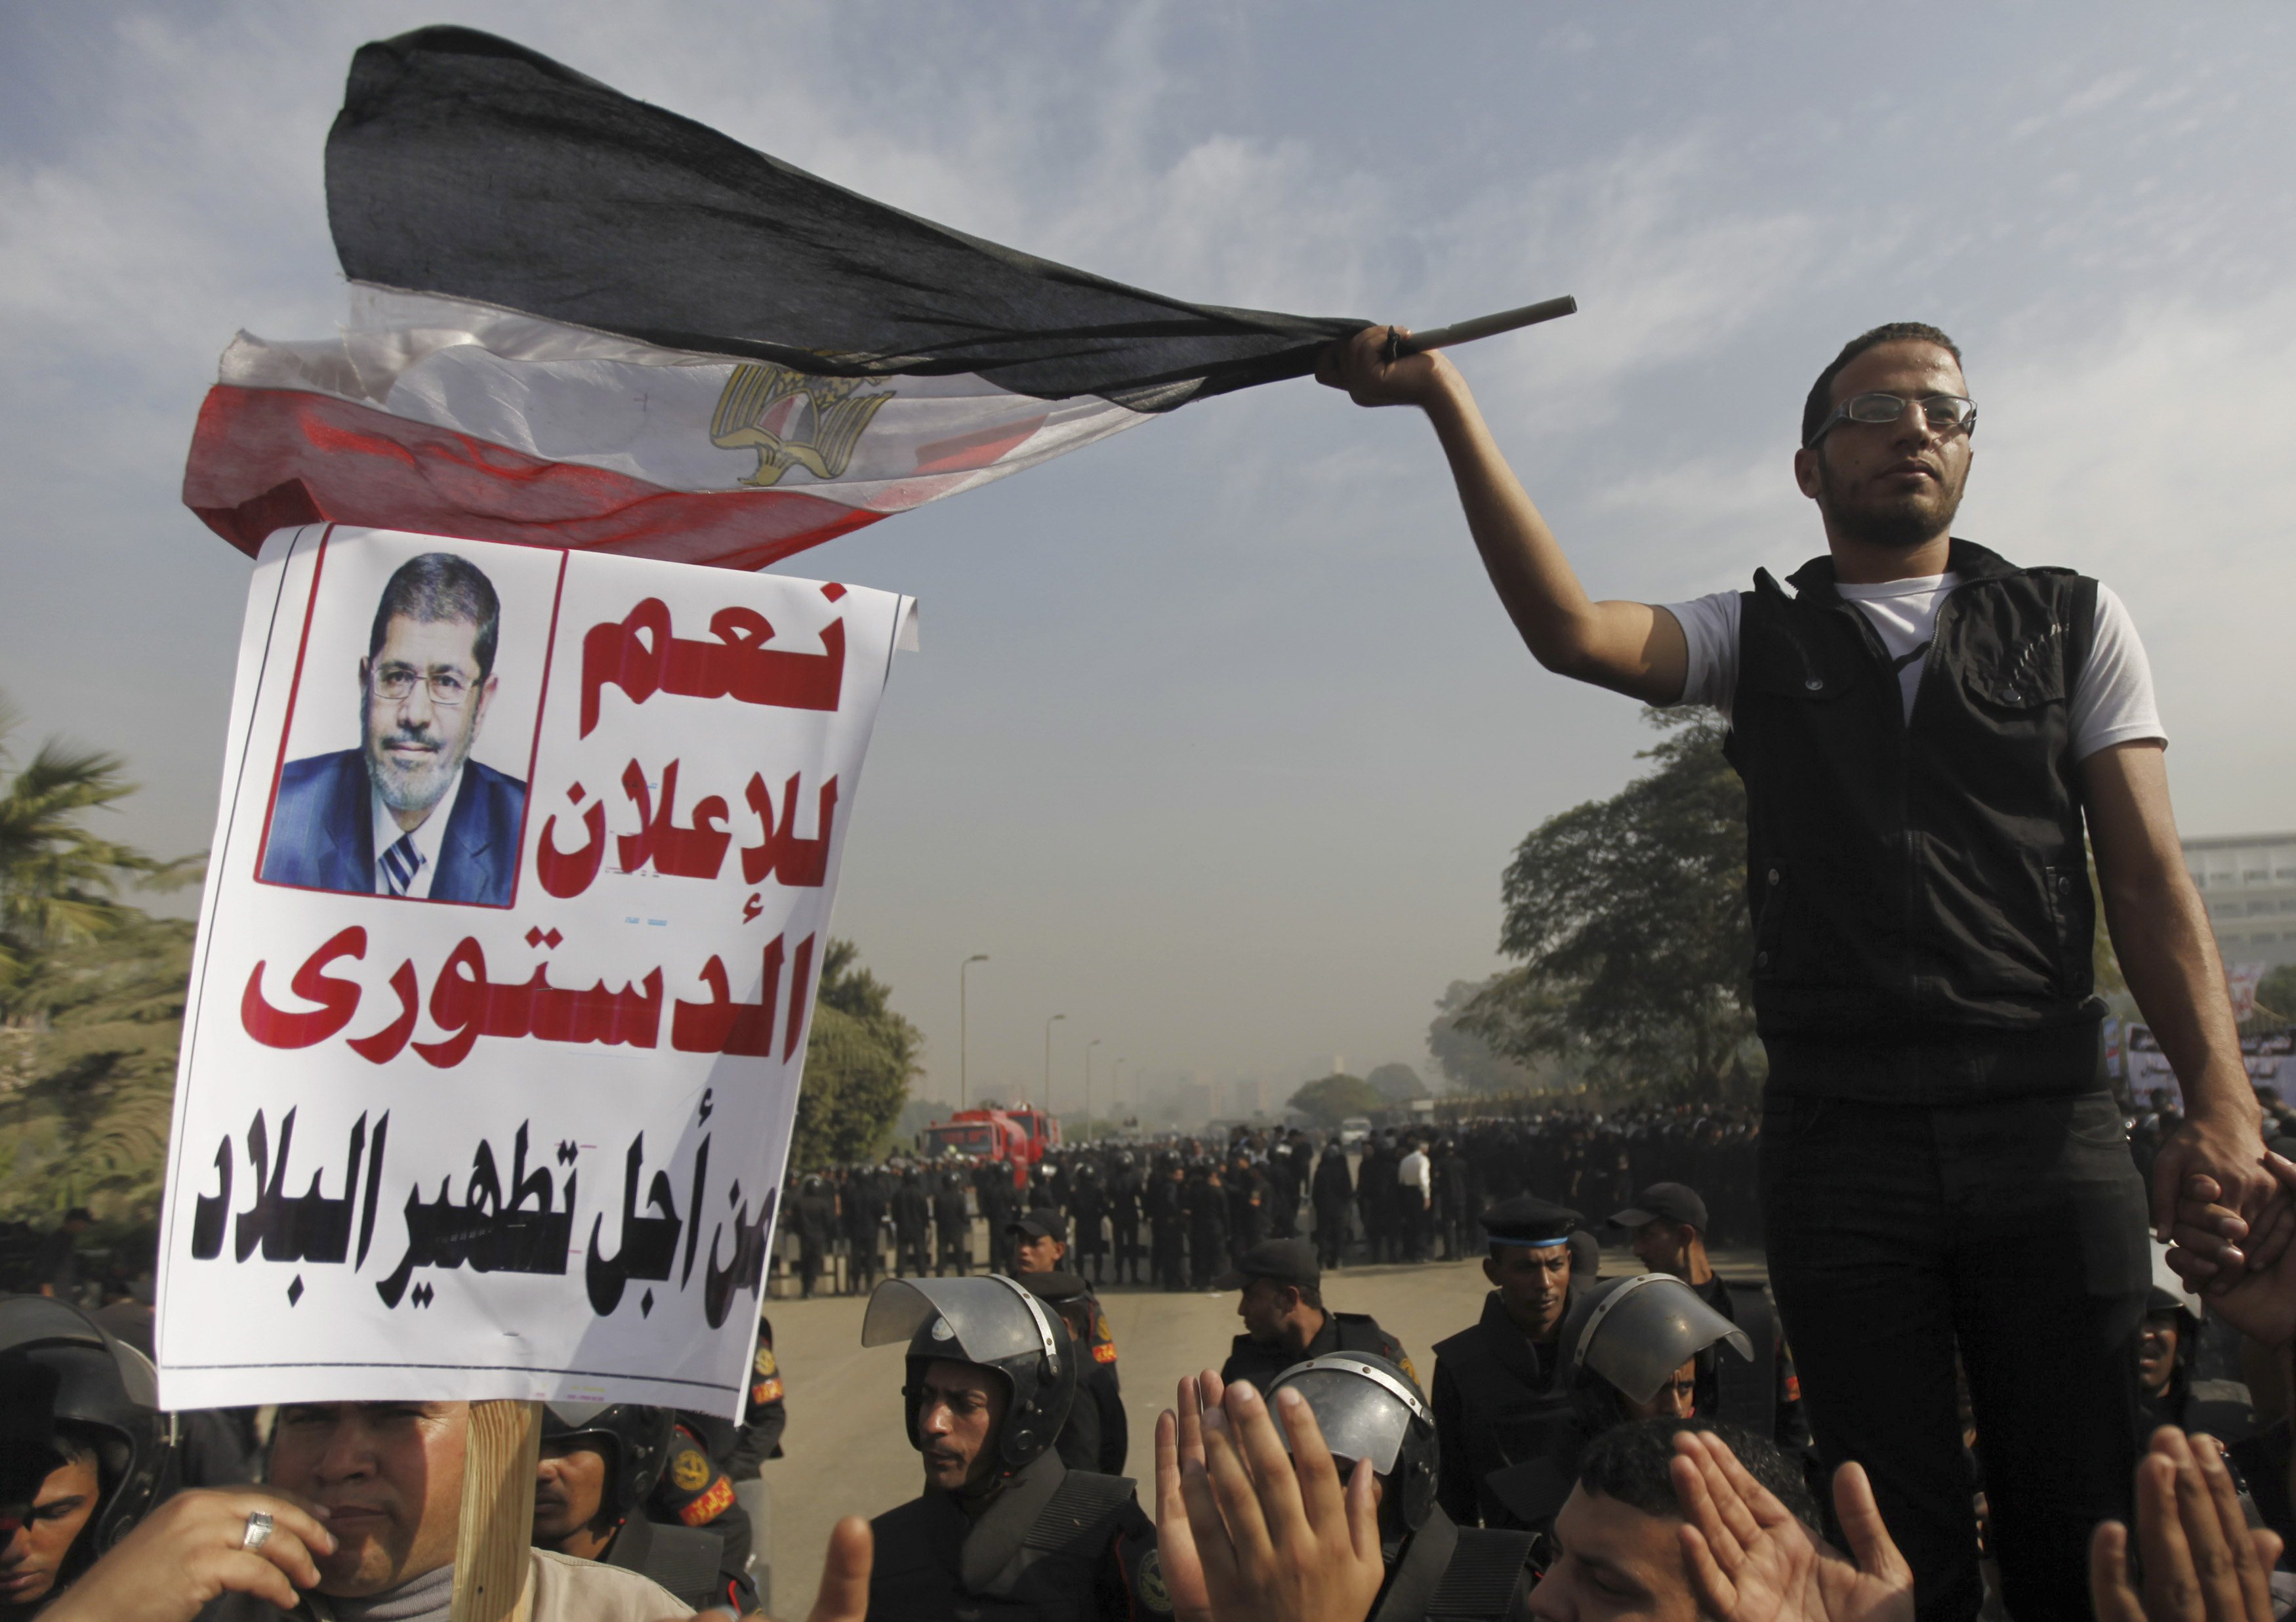 Egypt court considers challenges to Mursi's decree